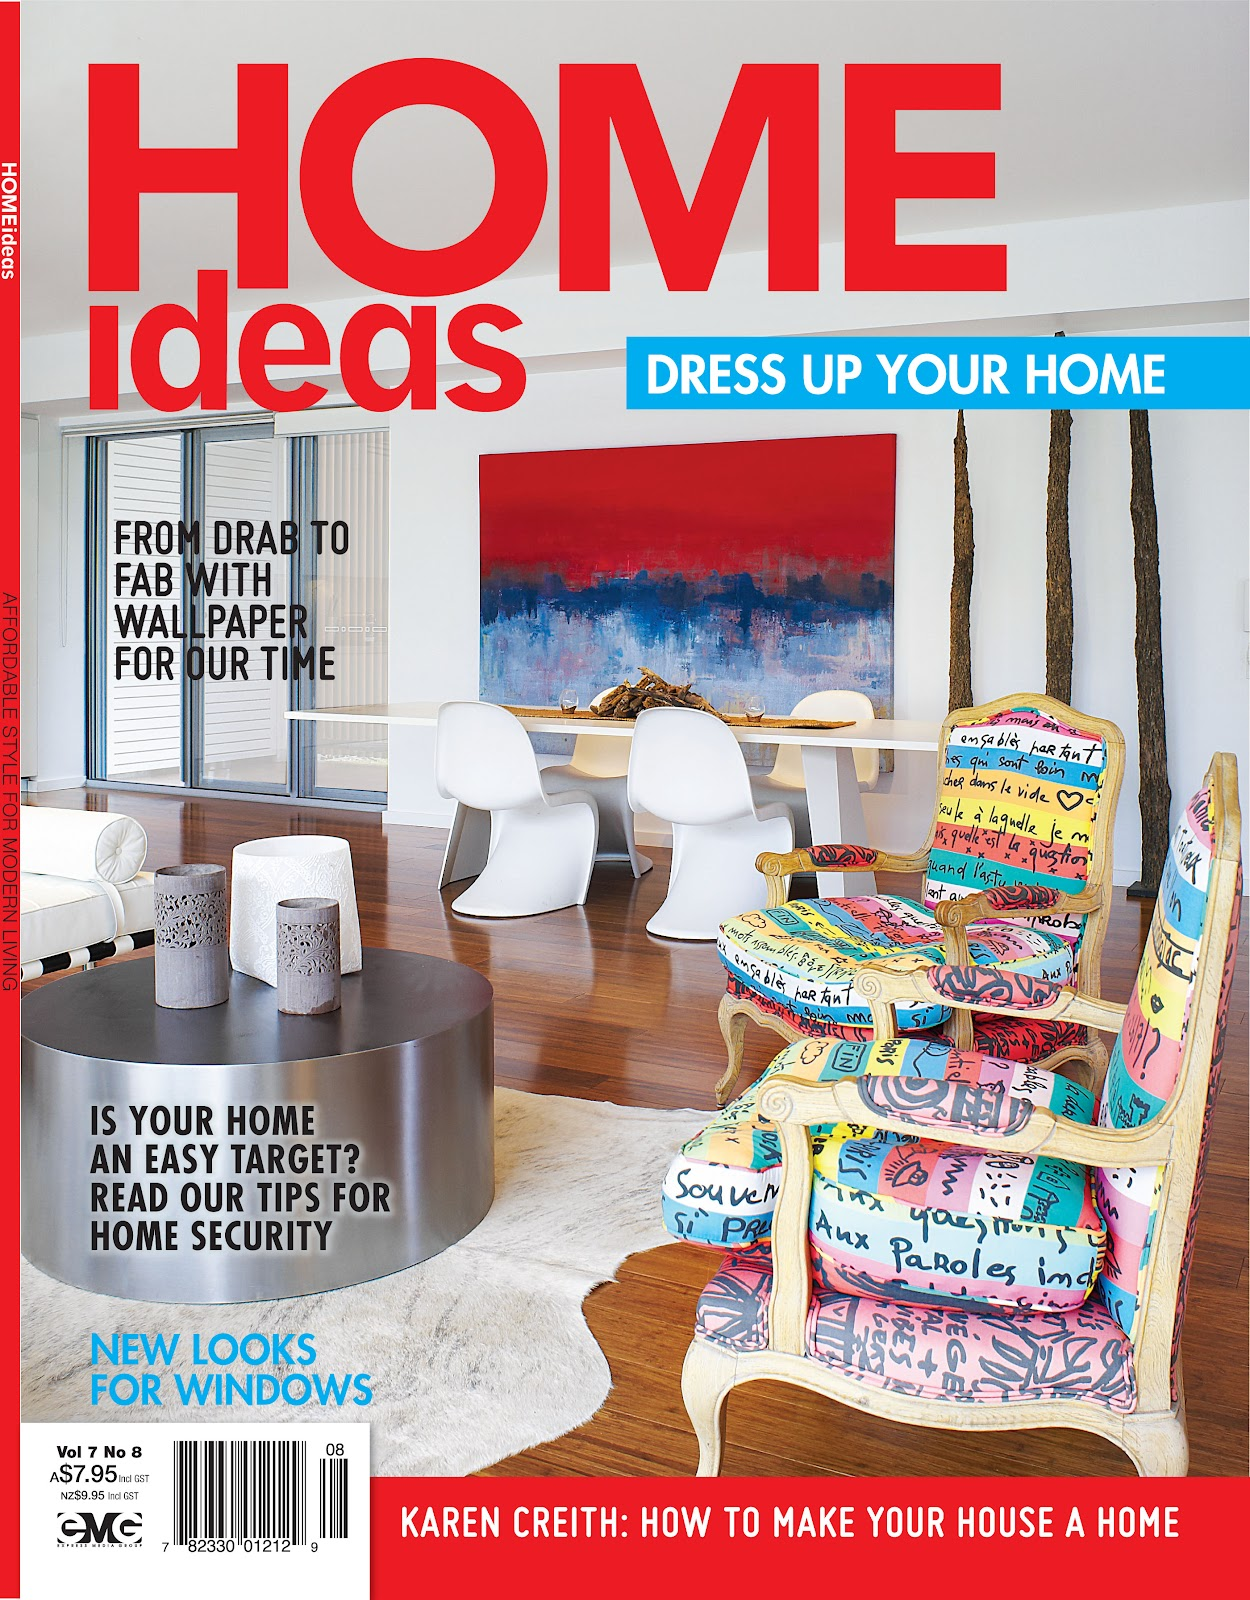 Mengsel in home ideas australia